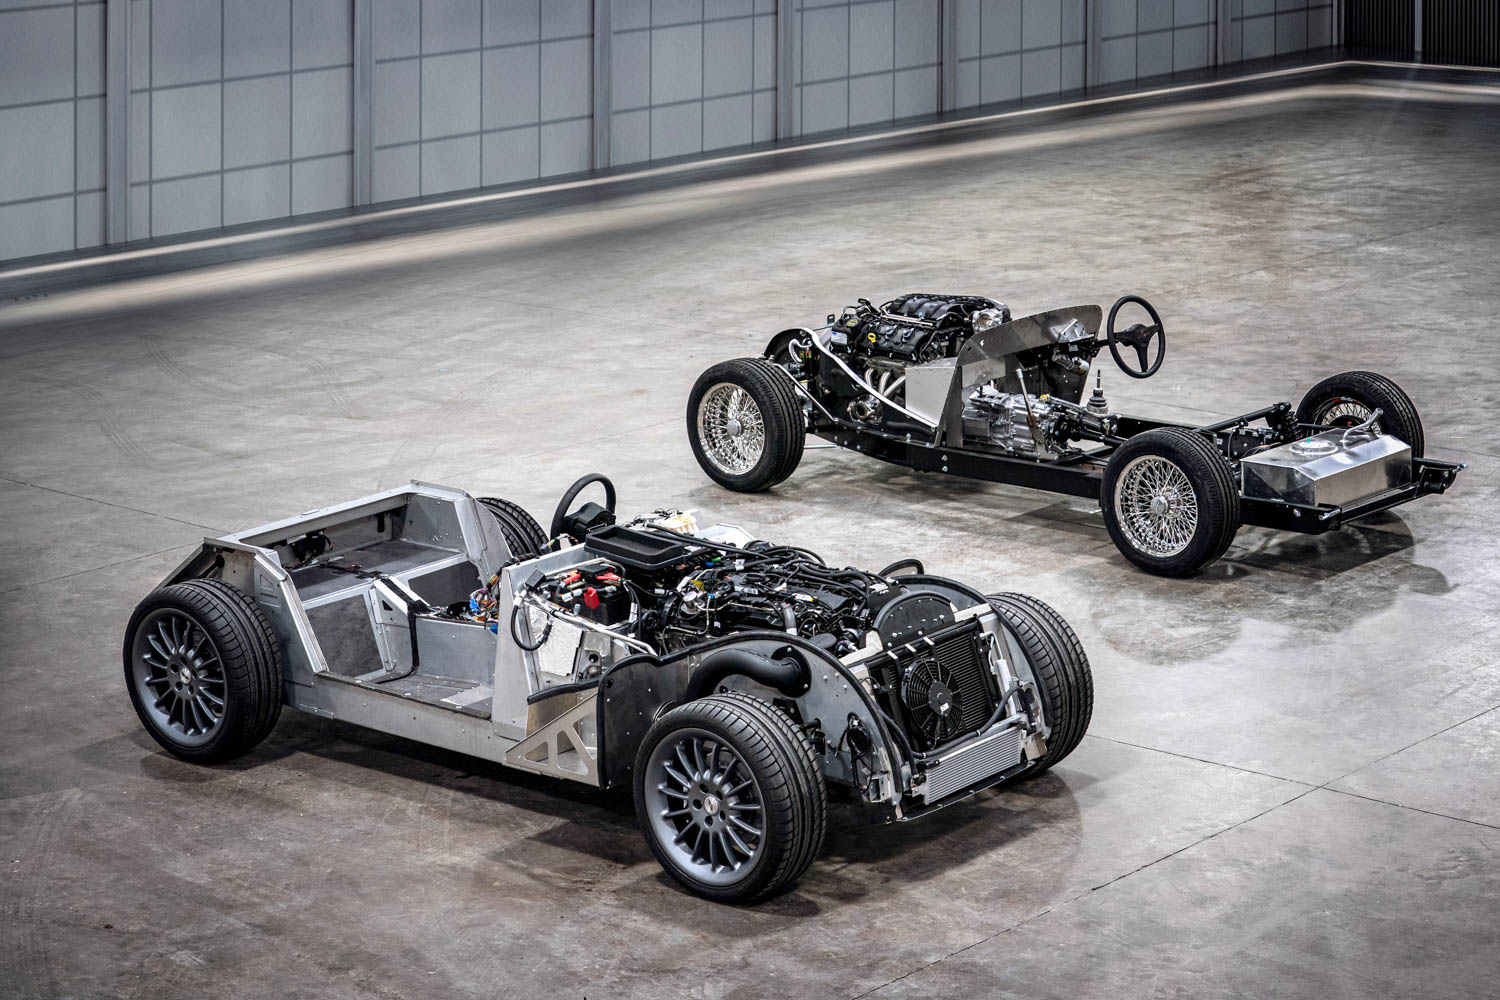 Morgan's aluminum CX chassis will open up a world of possibilities